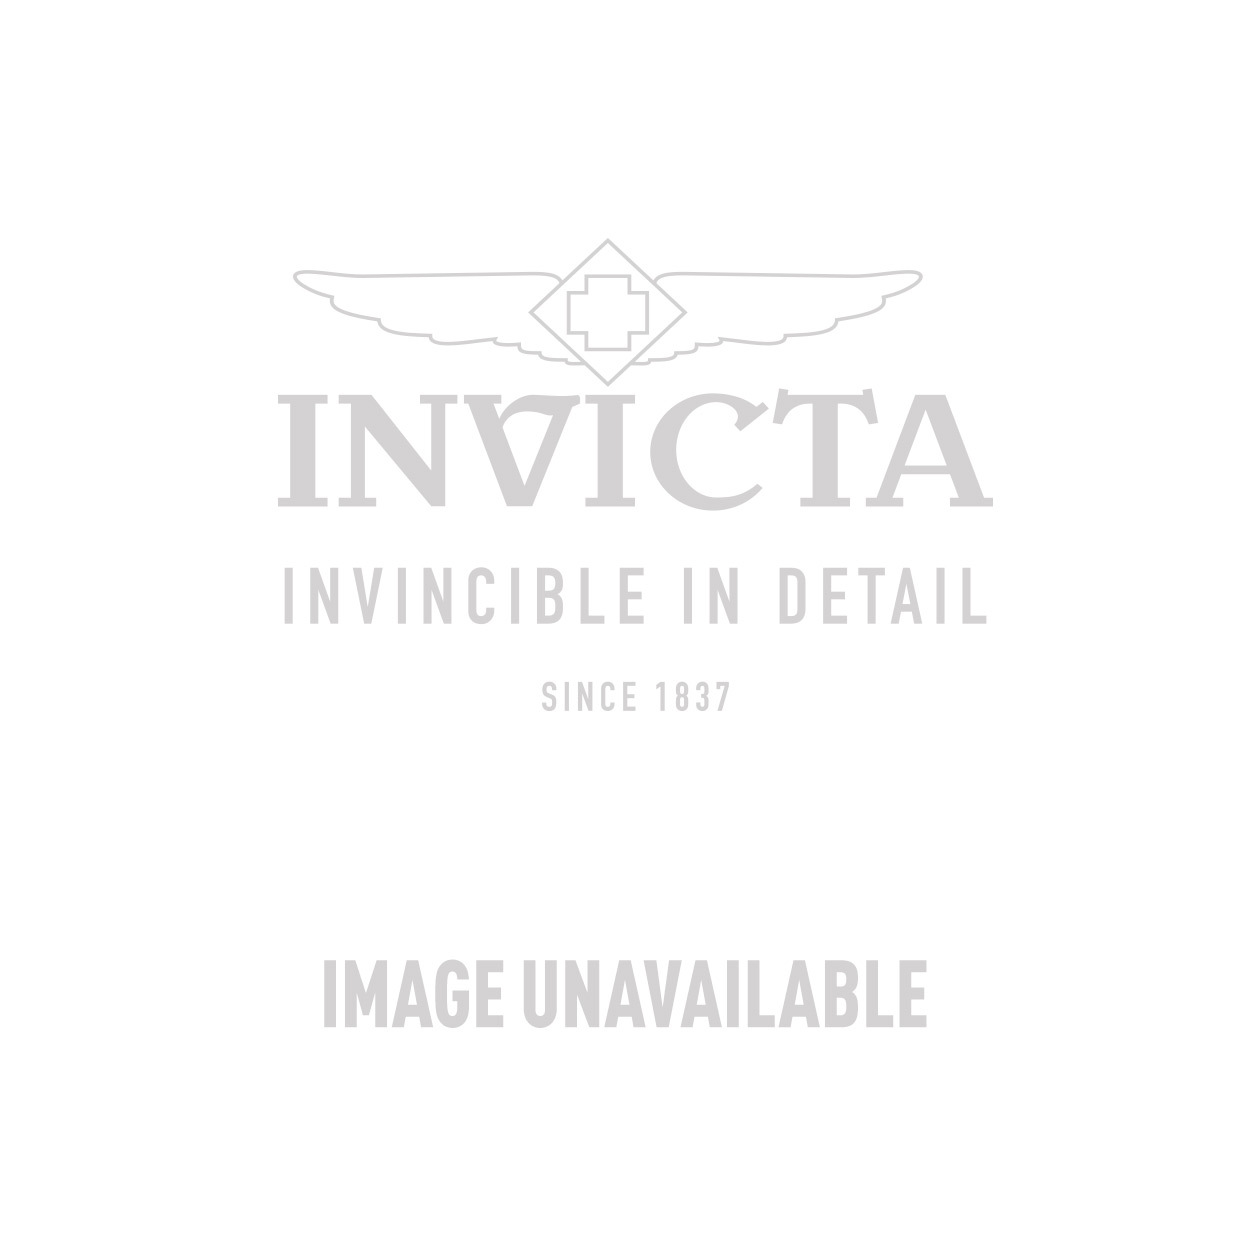 Invicta Venom Swiss Made Quartz Watch - Black, Stainless Steel case with Brown tone Silicone band - Model 90152